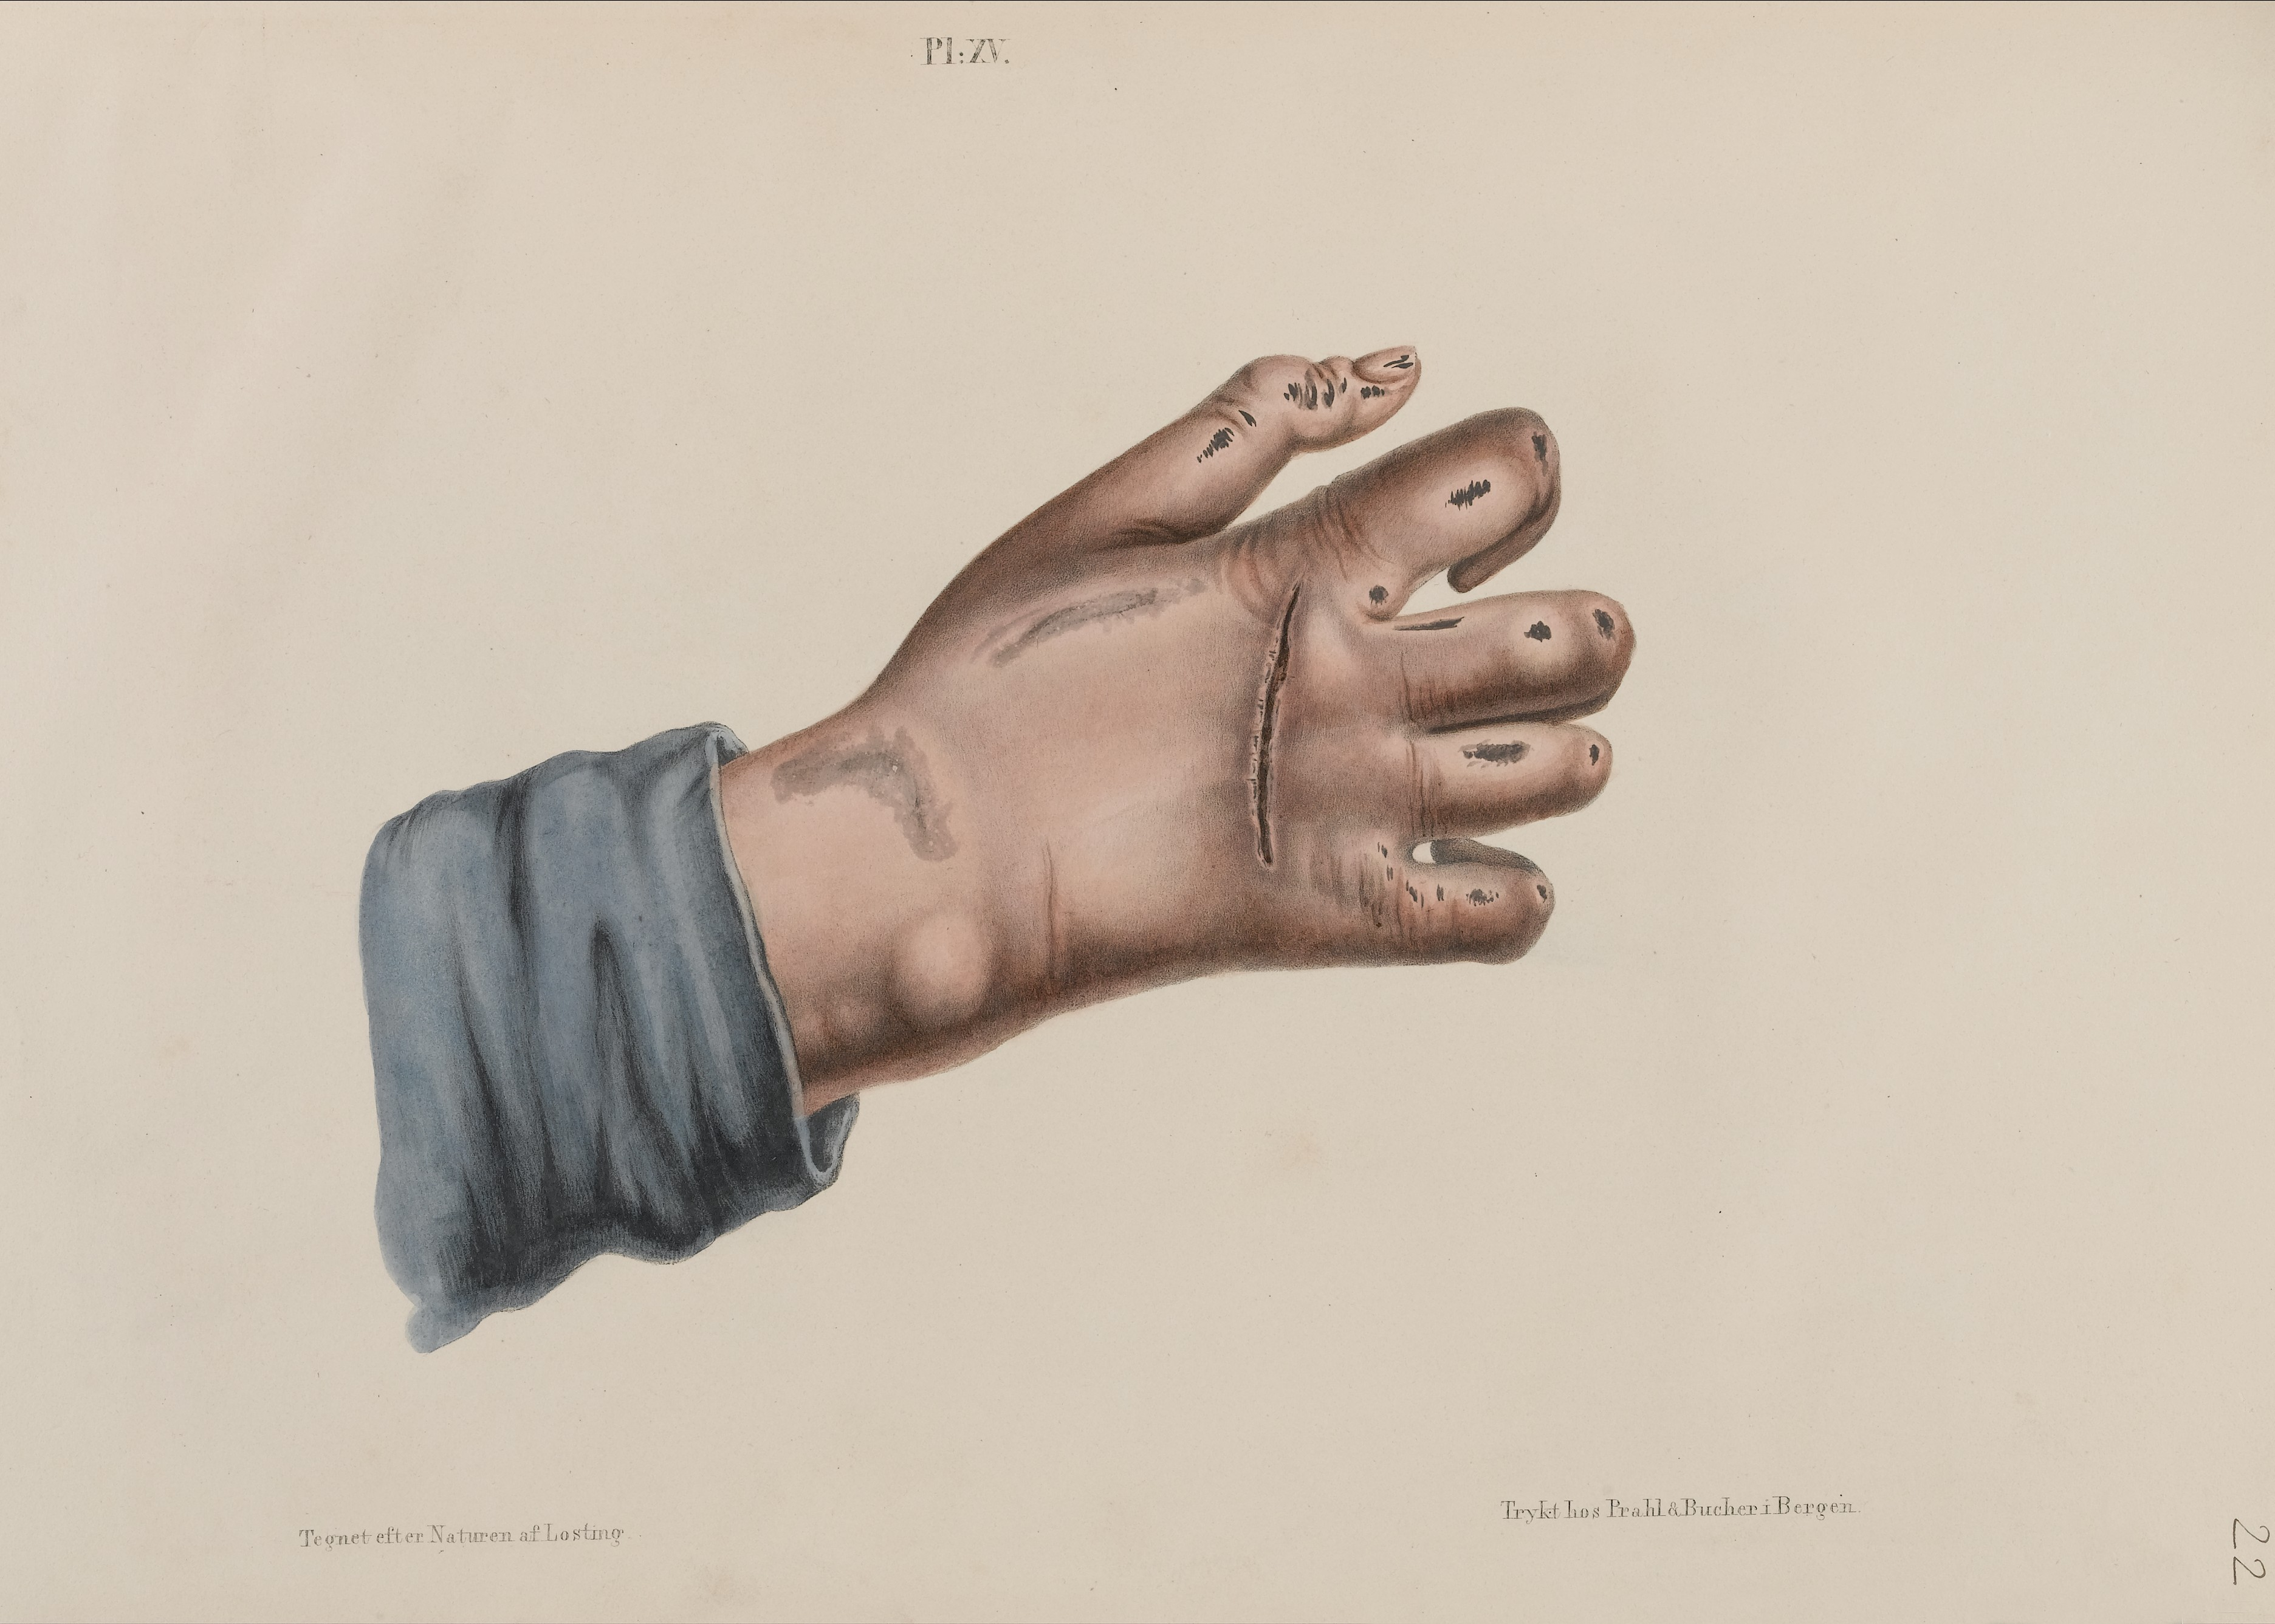 File:Hand showing leprosy Wellcome L0040719.jpg - Wikimedia Commons